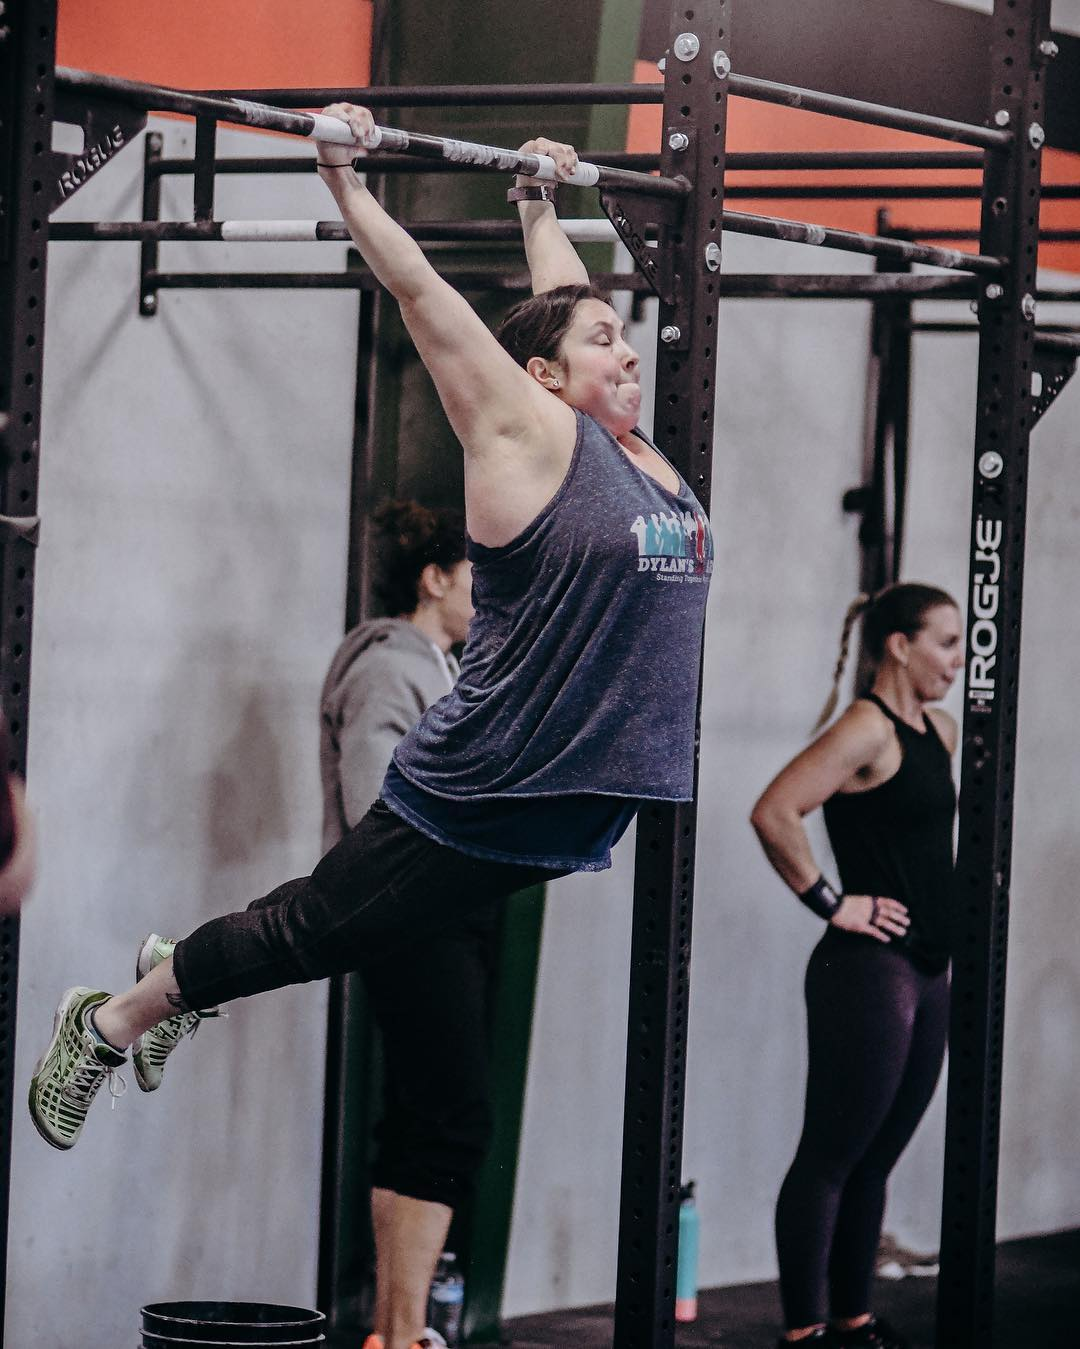 The best part of competition is that through it we discover what we are capable of and how much more we can actually do than we ever believed possible. There's only ☝🏽 workout to go in the 2019 CrossFit Open. Push your limits & give it everything you've got to @jadex_love FIRST pull-up!